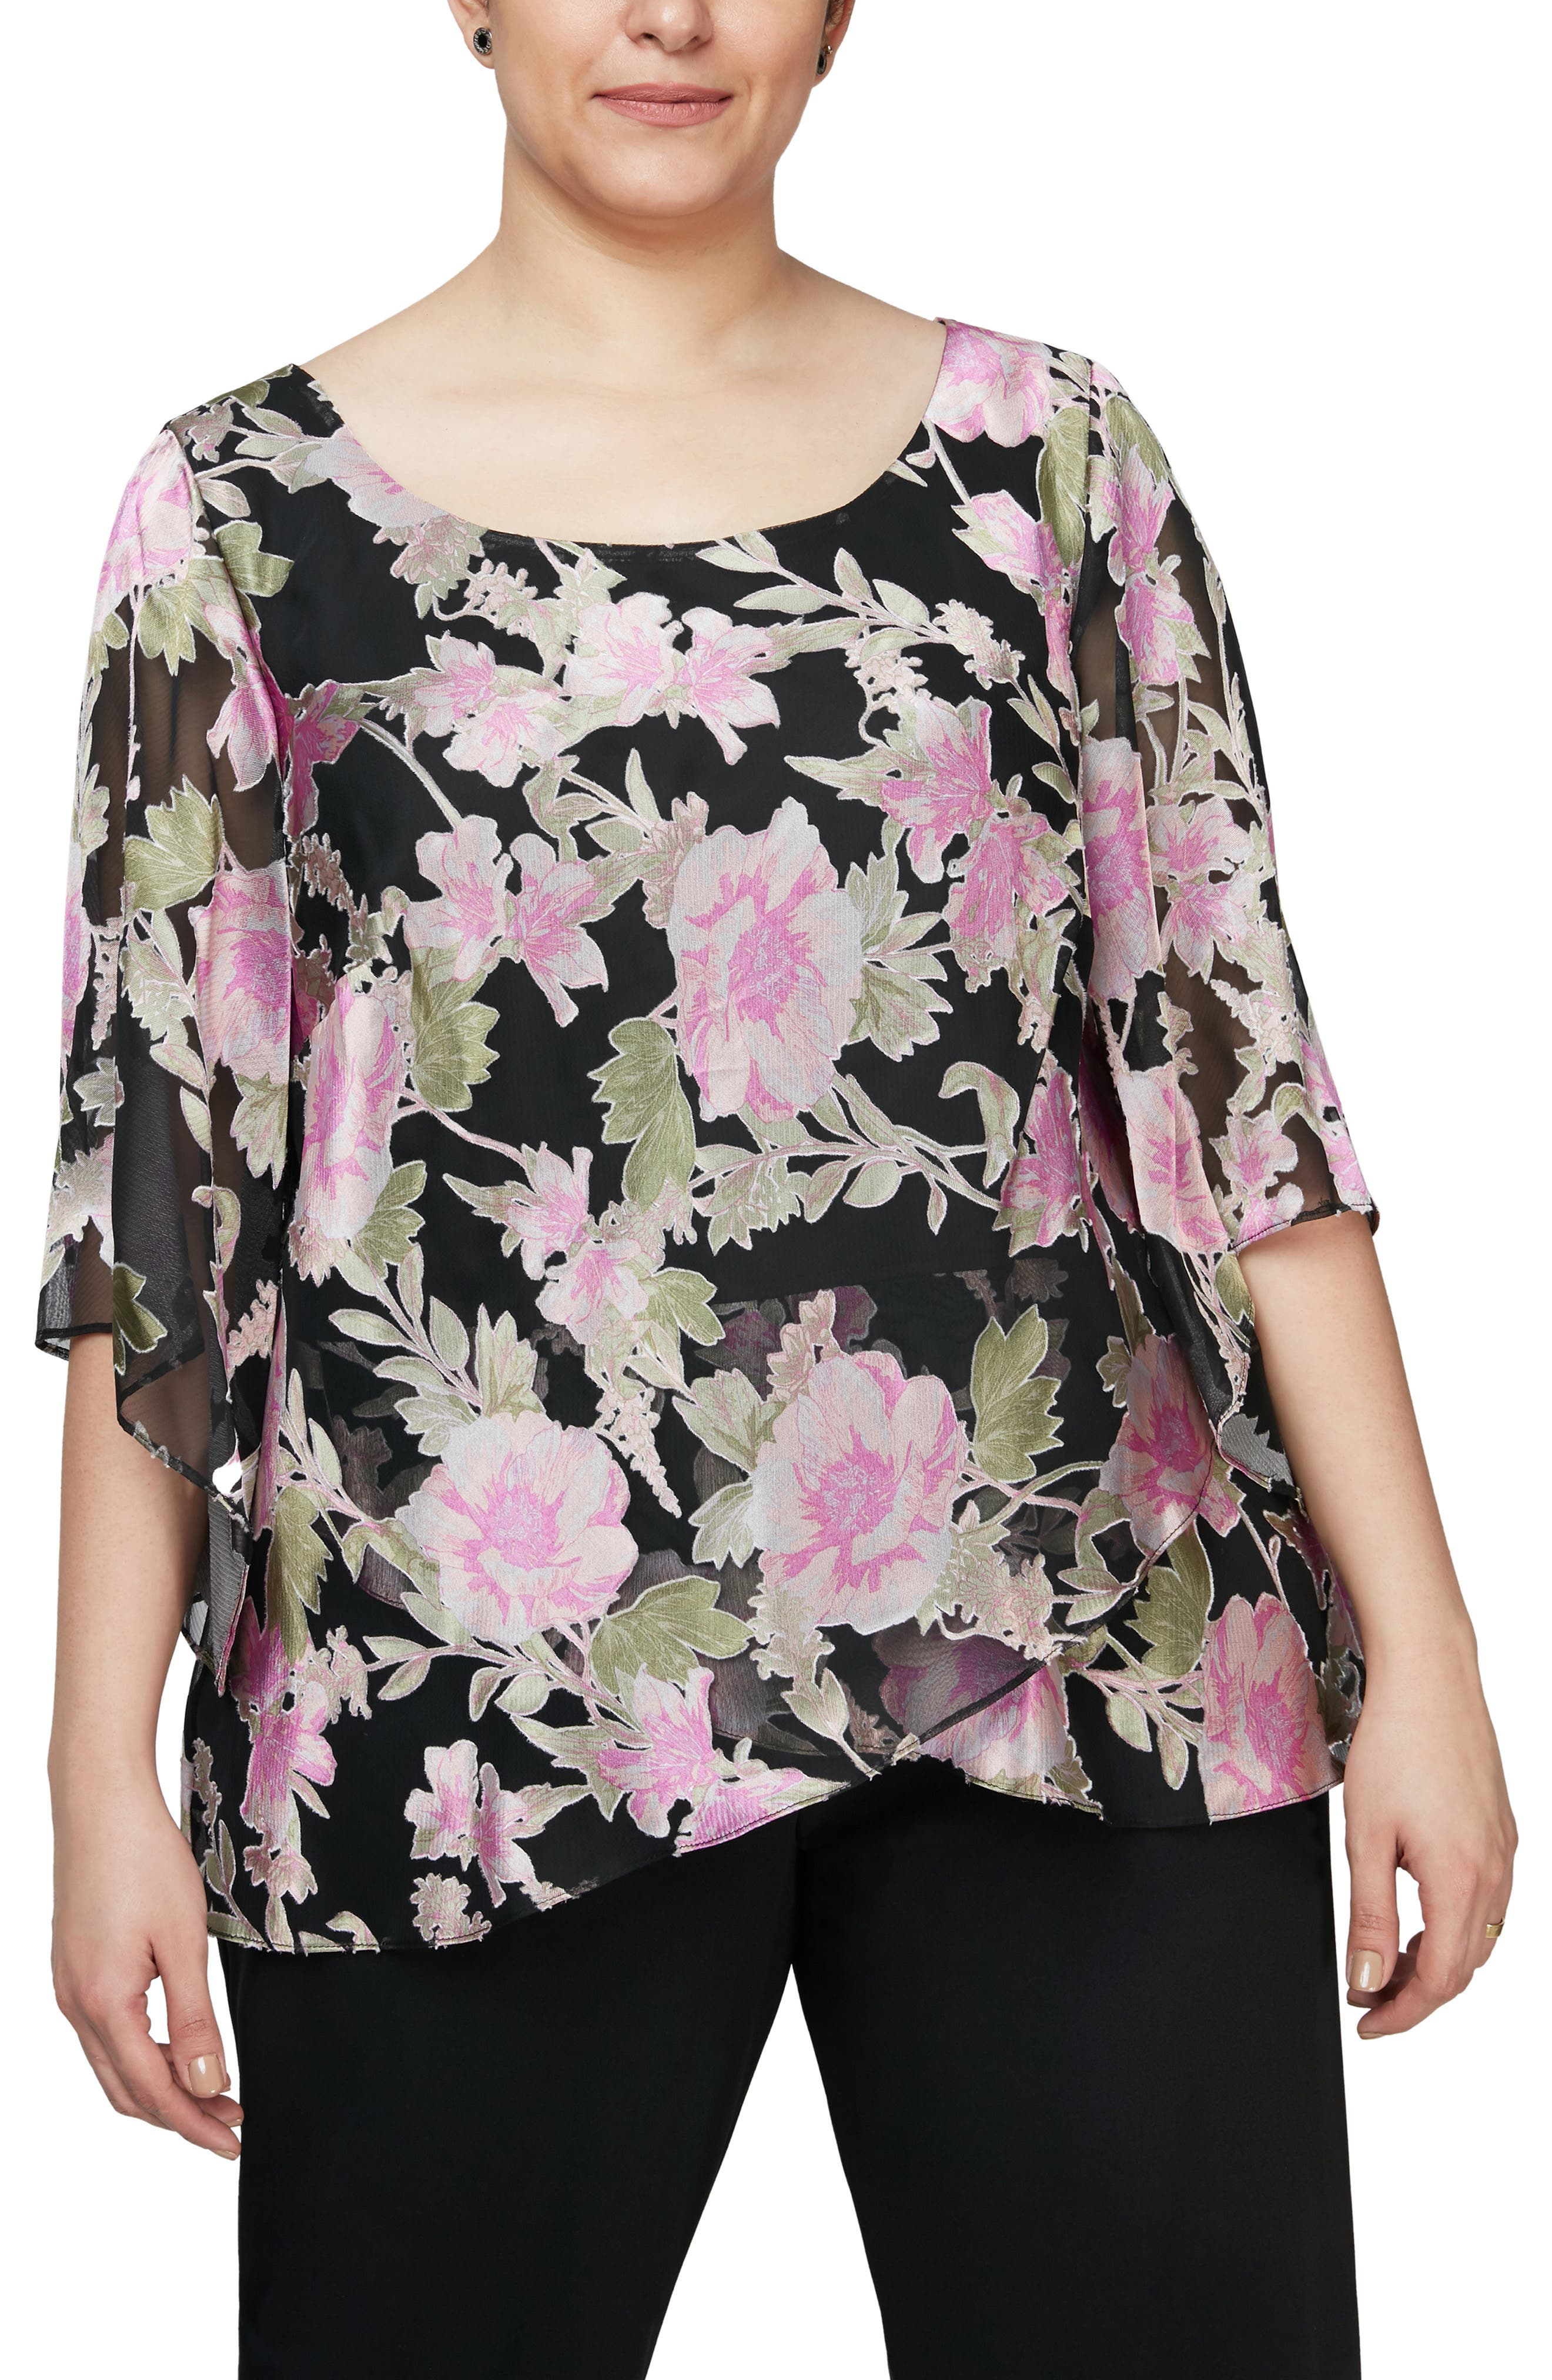 A rich floral print illustrates the shadow-striped chiffon of a floaty top that falls to a tulip-hem finish. A wide scooped neckline and angled sheer sleeves detail the elegant style. Style Name: Alex Evenings Floral Scoop Neck Blouse (Plus Size). Style Number: 6102728. Available in stores.